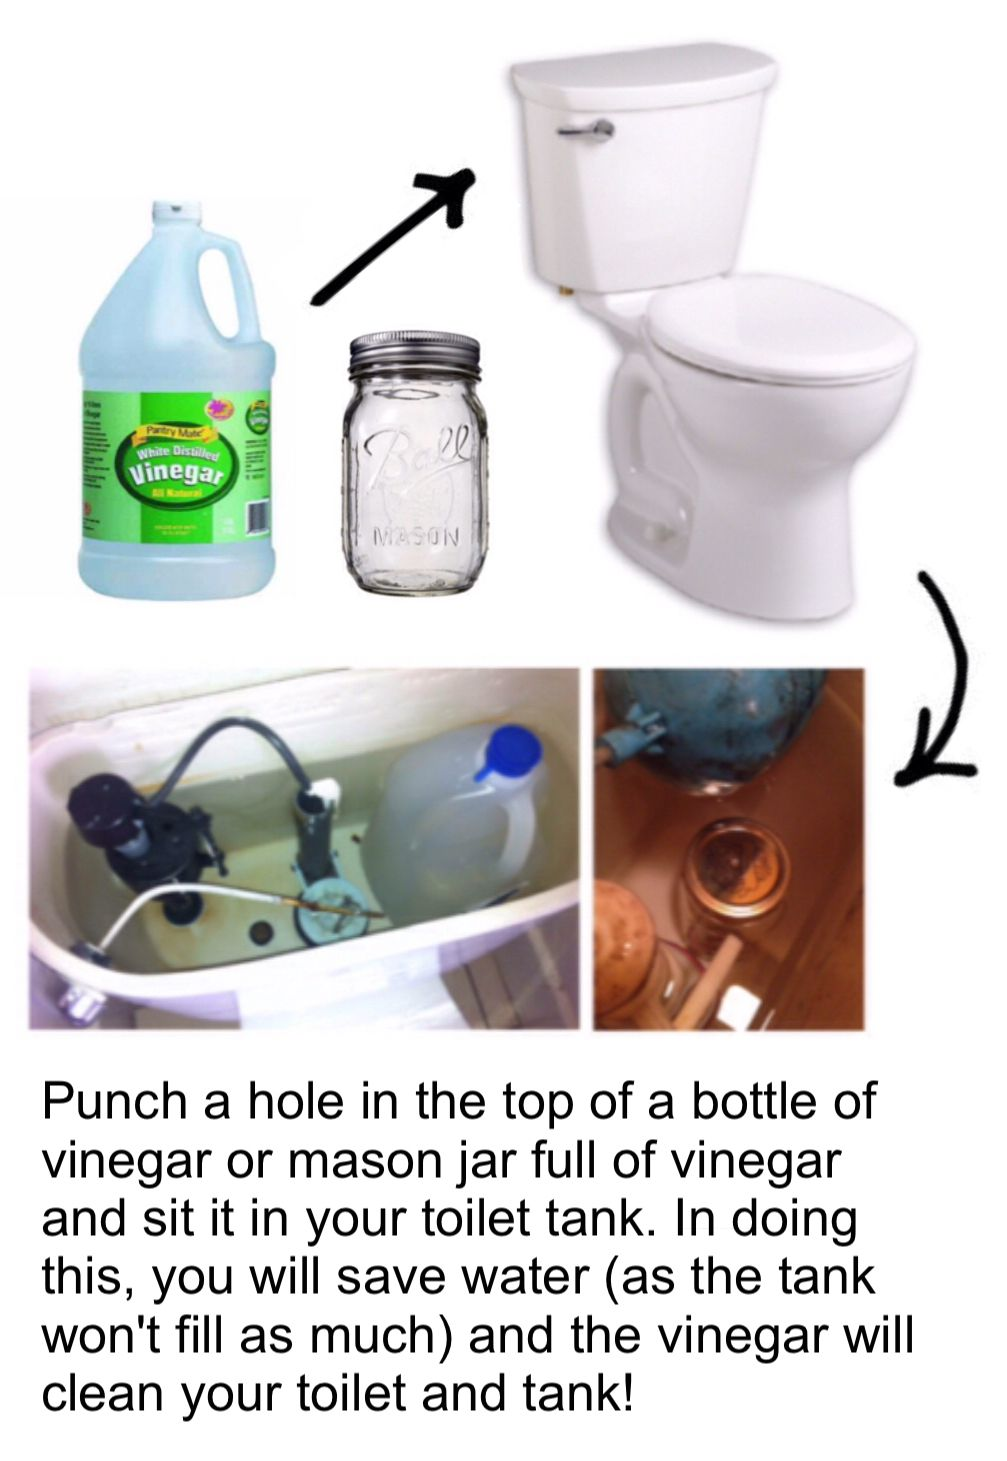 Punch A Hole In The Top Of A Bottle Of Vinegar Or Mason Jar Full Of Vinegar And Sit It In Your Toilet Tank In Do Toilet Tank Cleaning Vinegar In